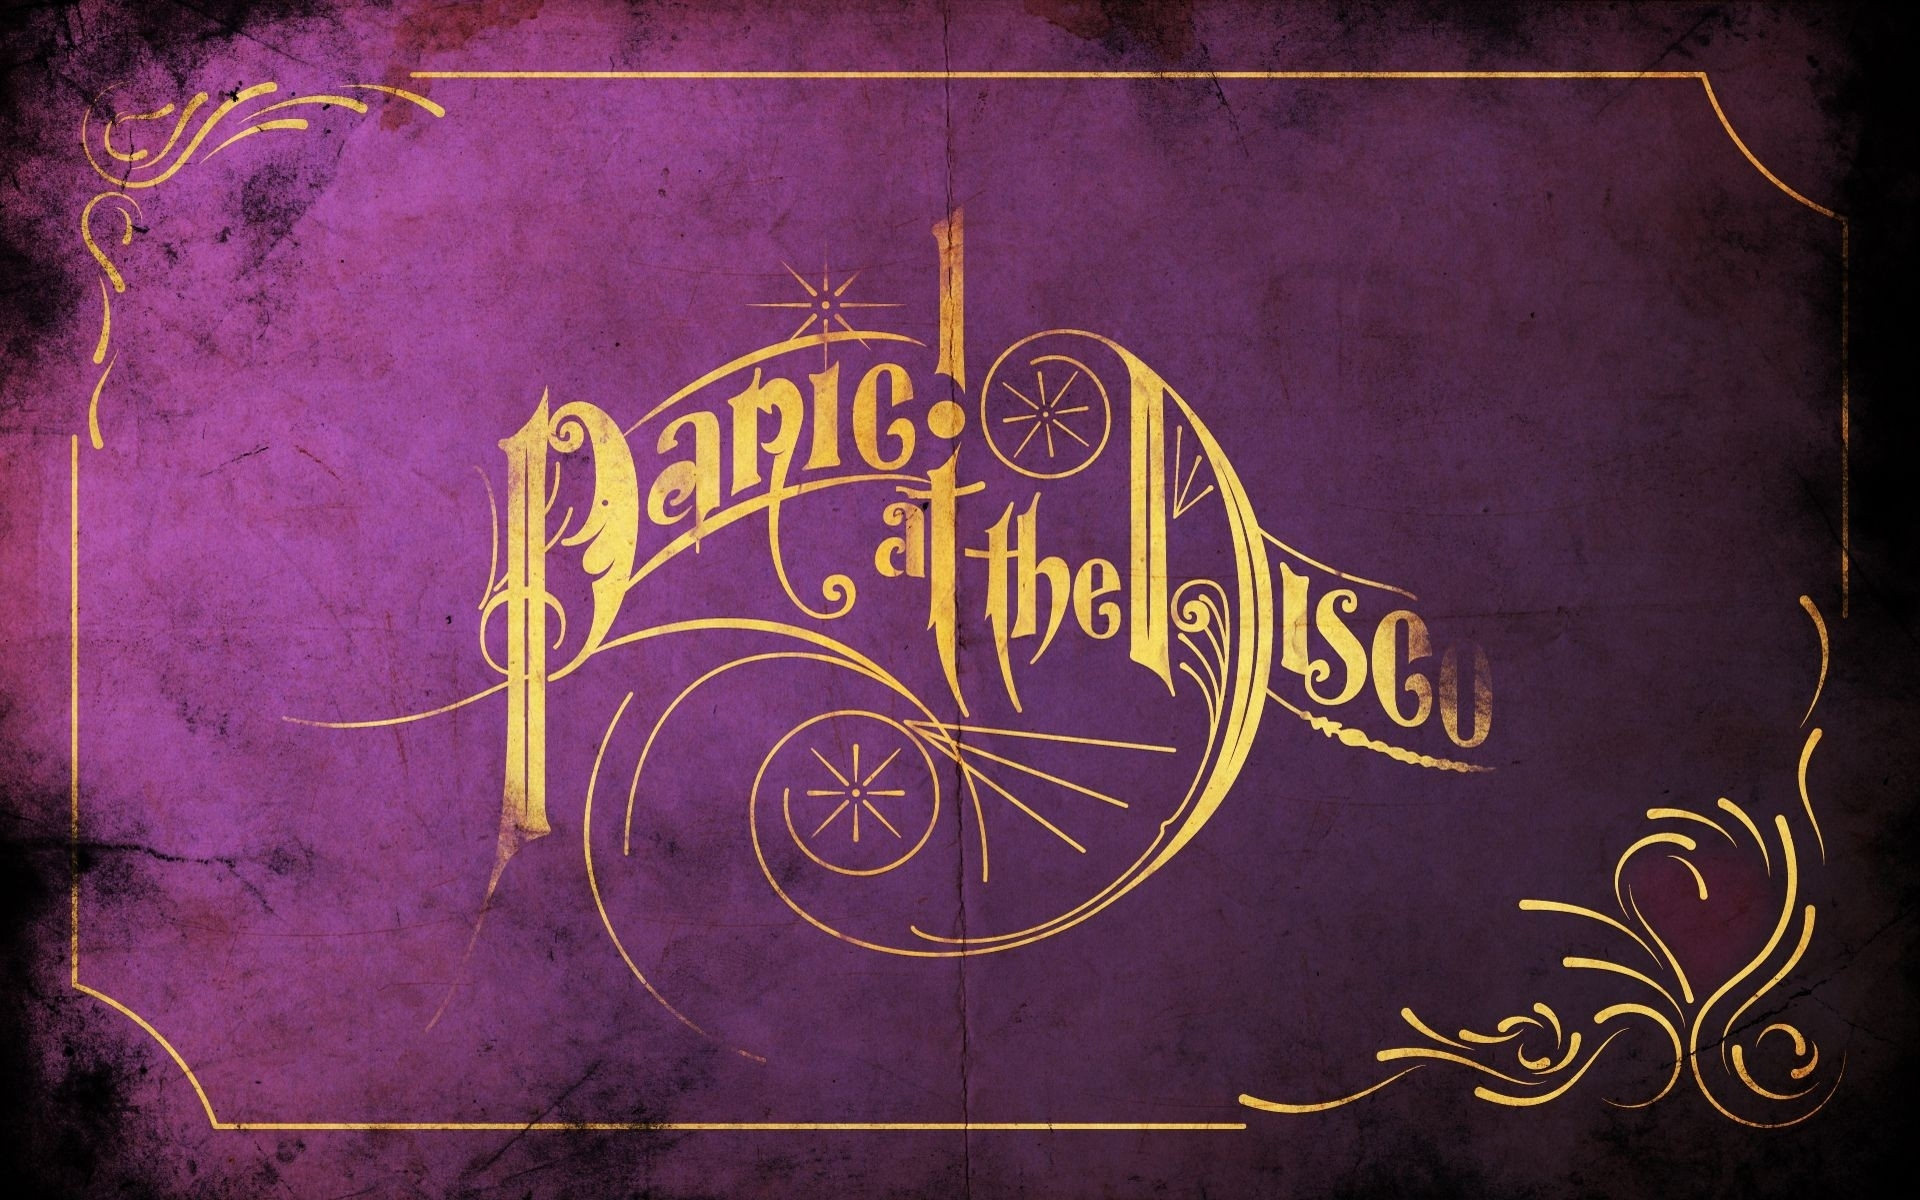 panic at the disco wallpaper ·① download free high resolution